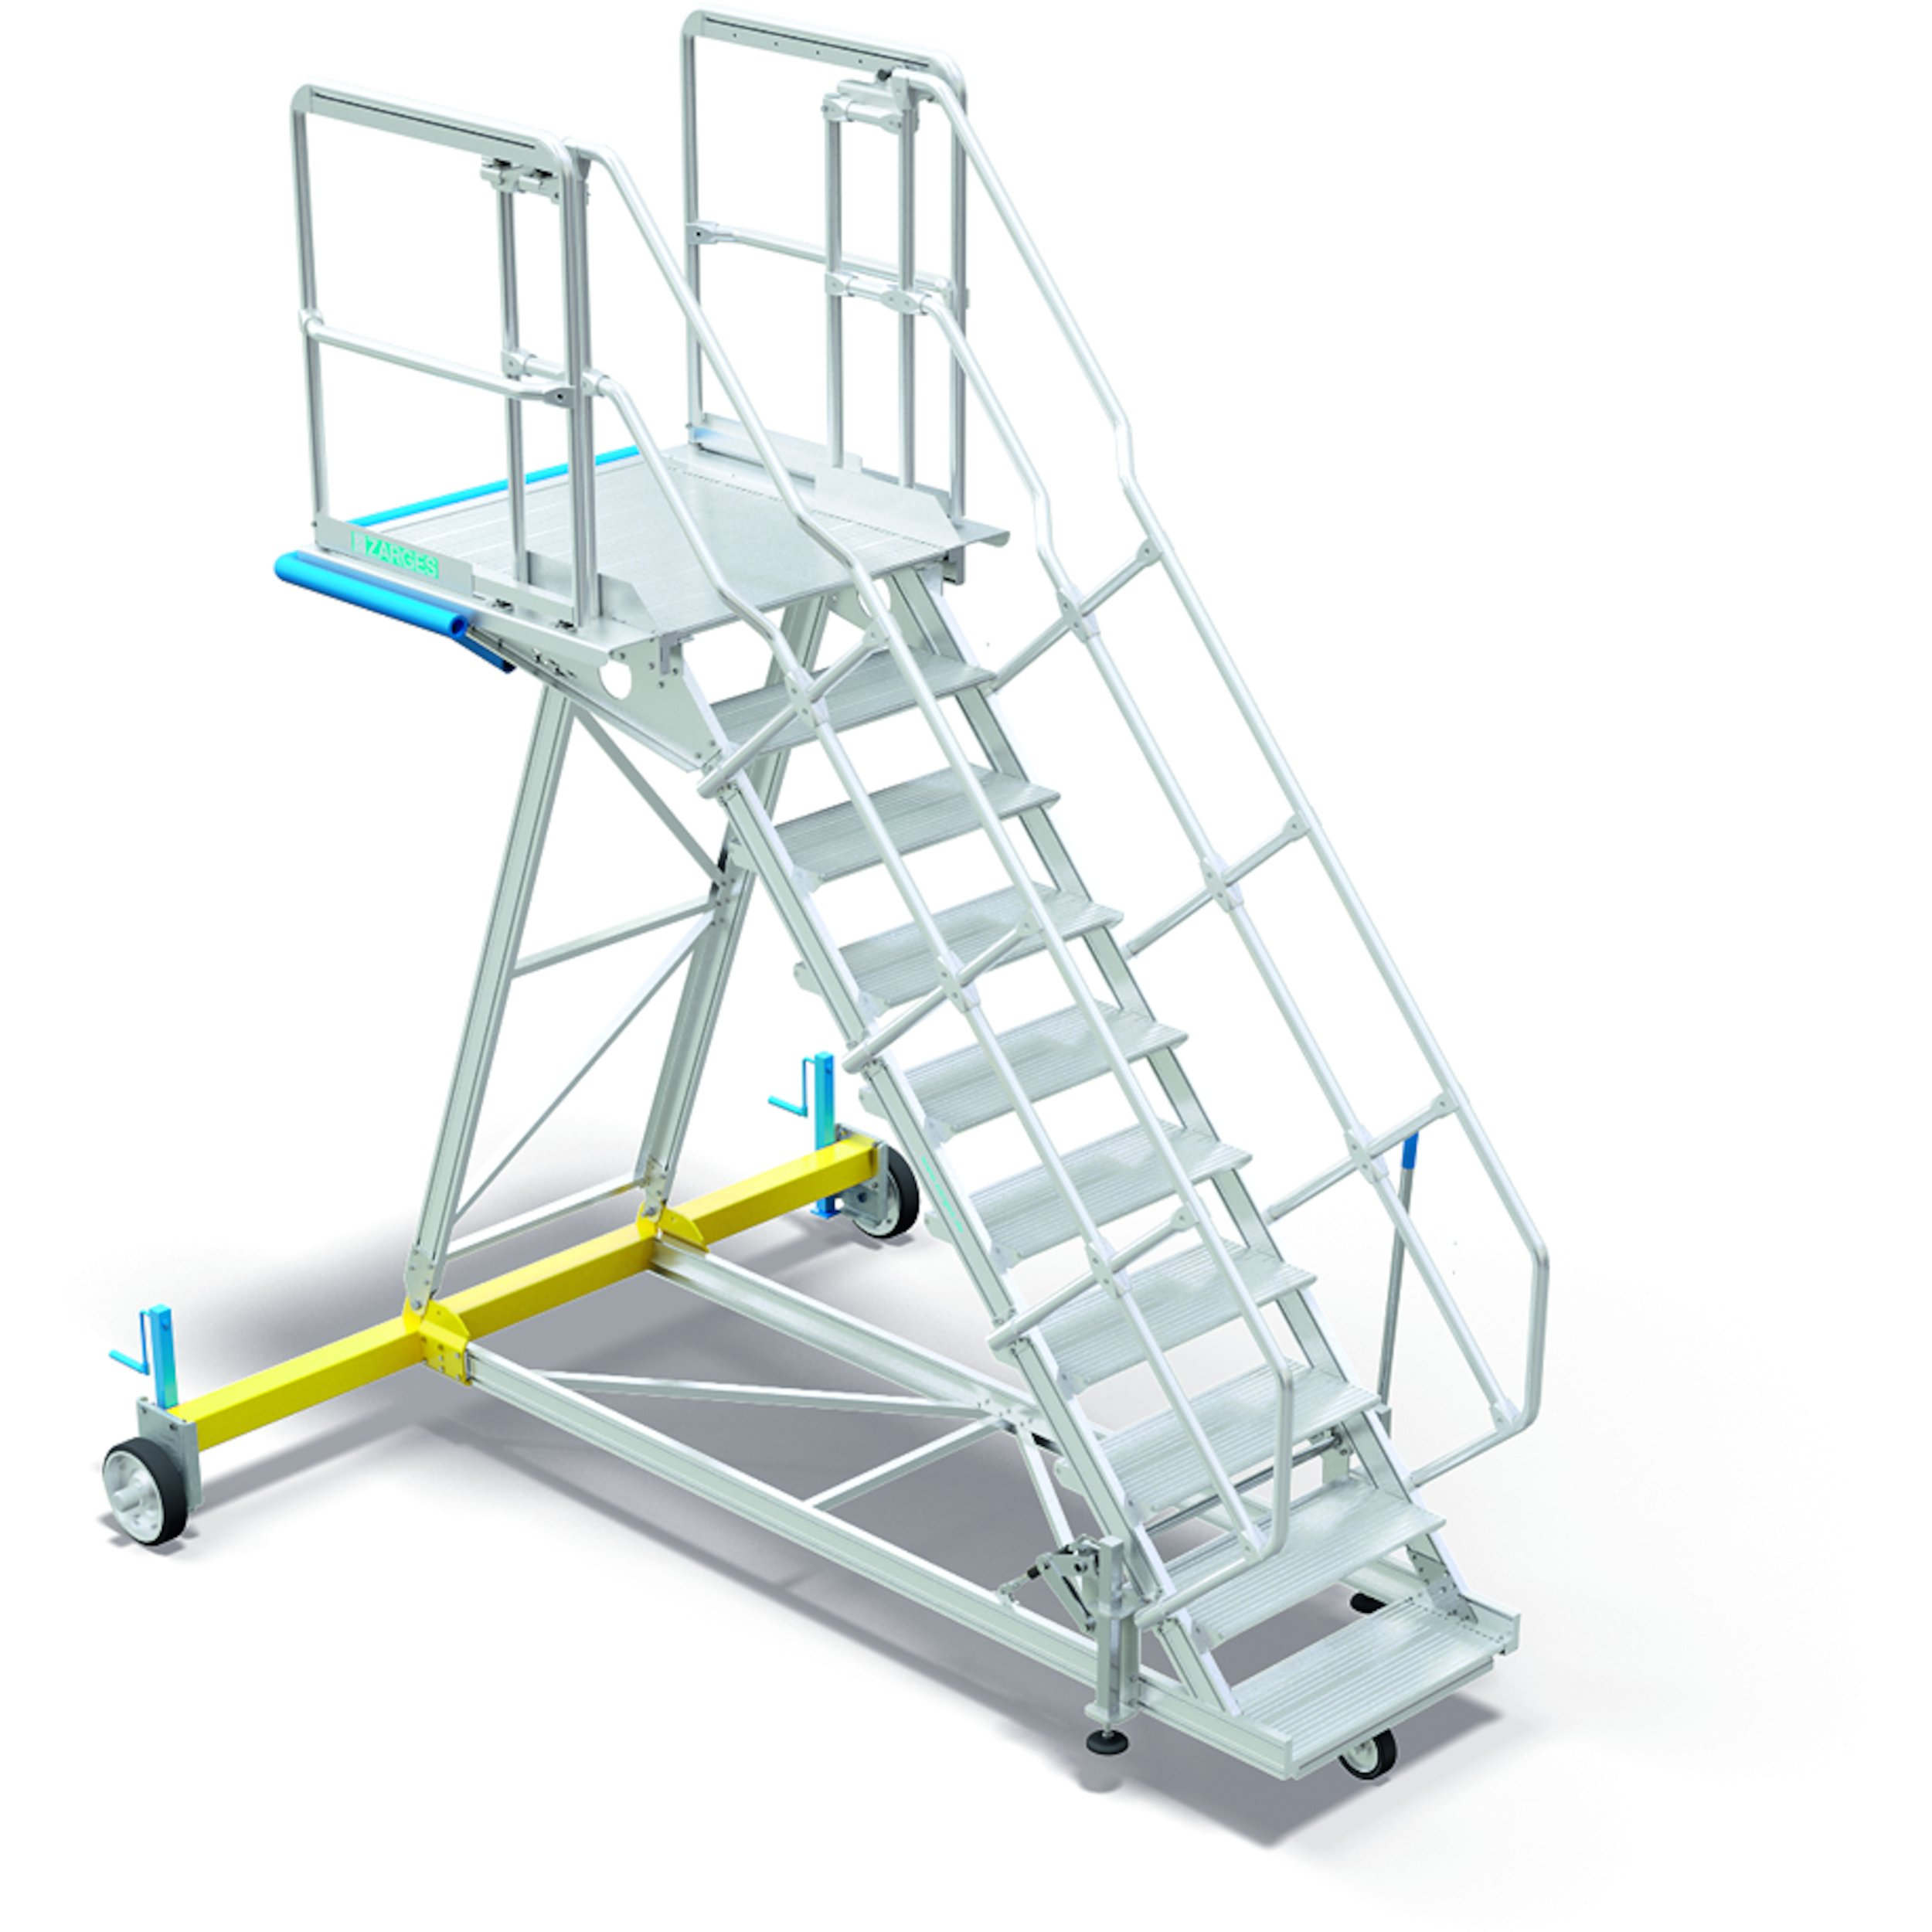 Universal maintenance stairs with fixed height for the